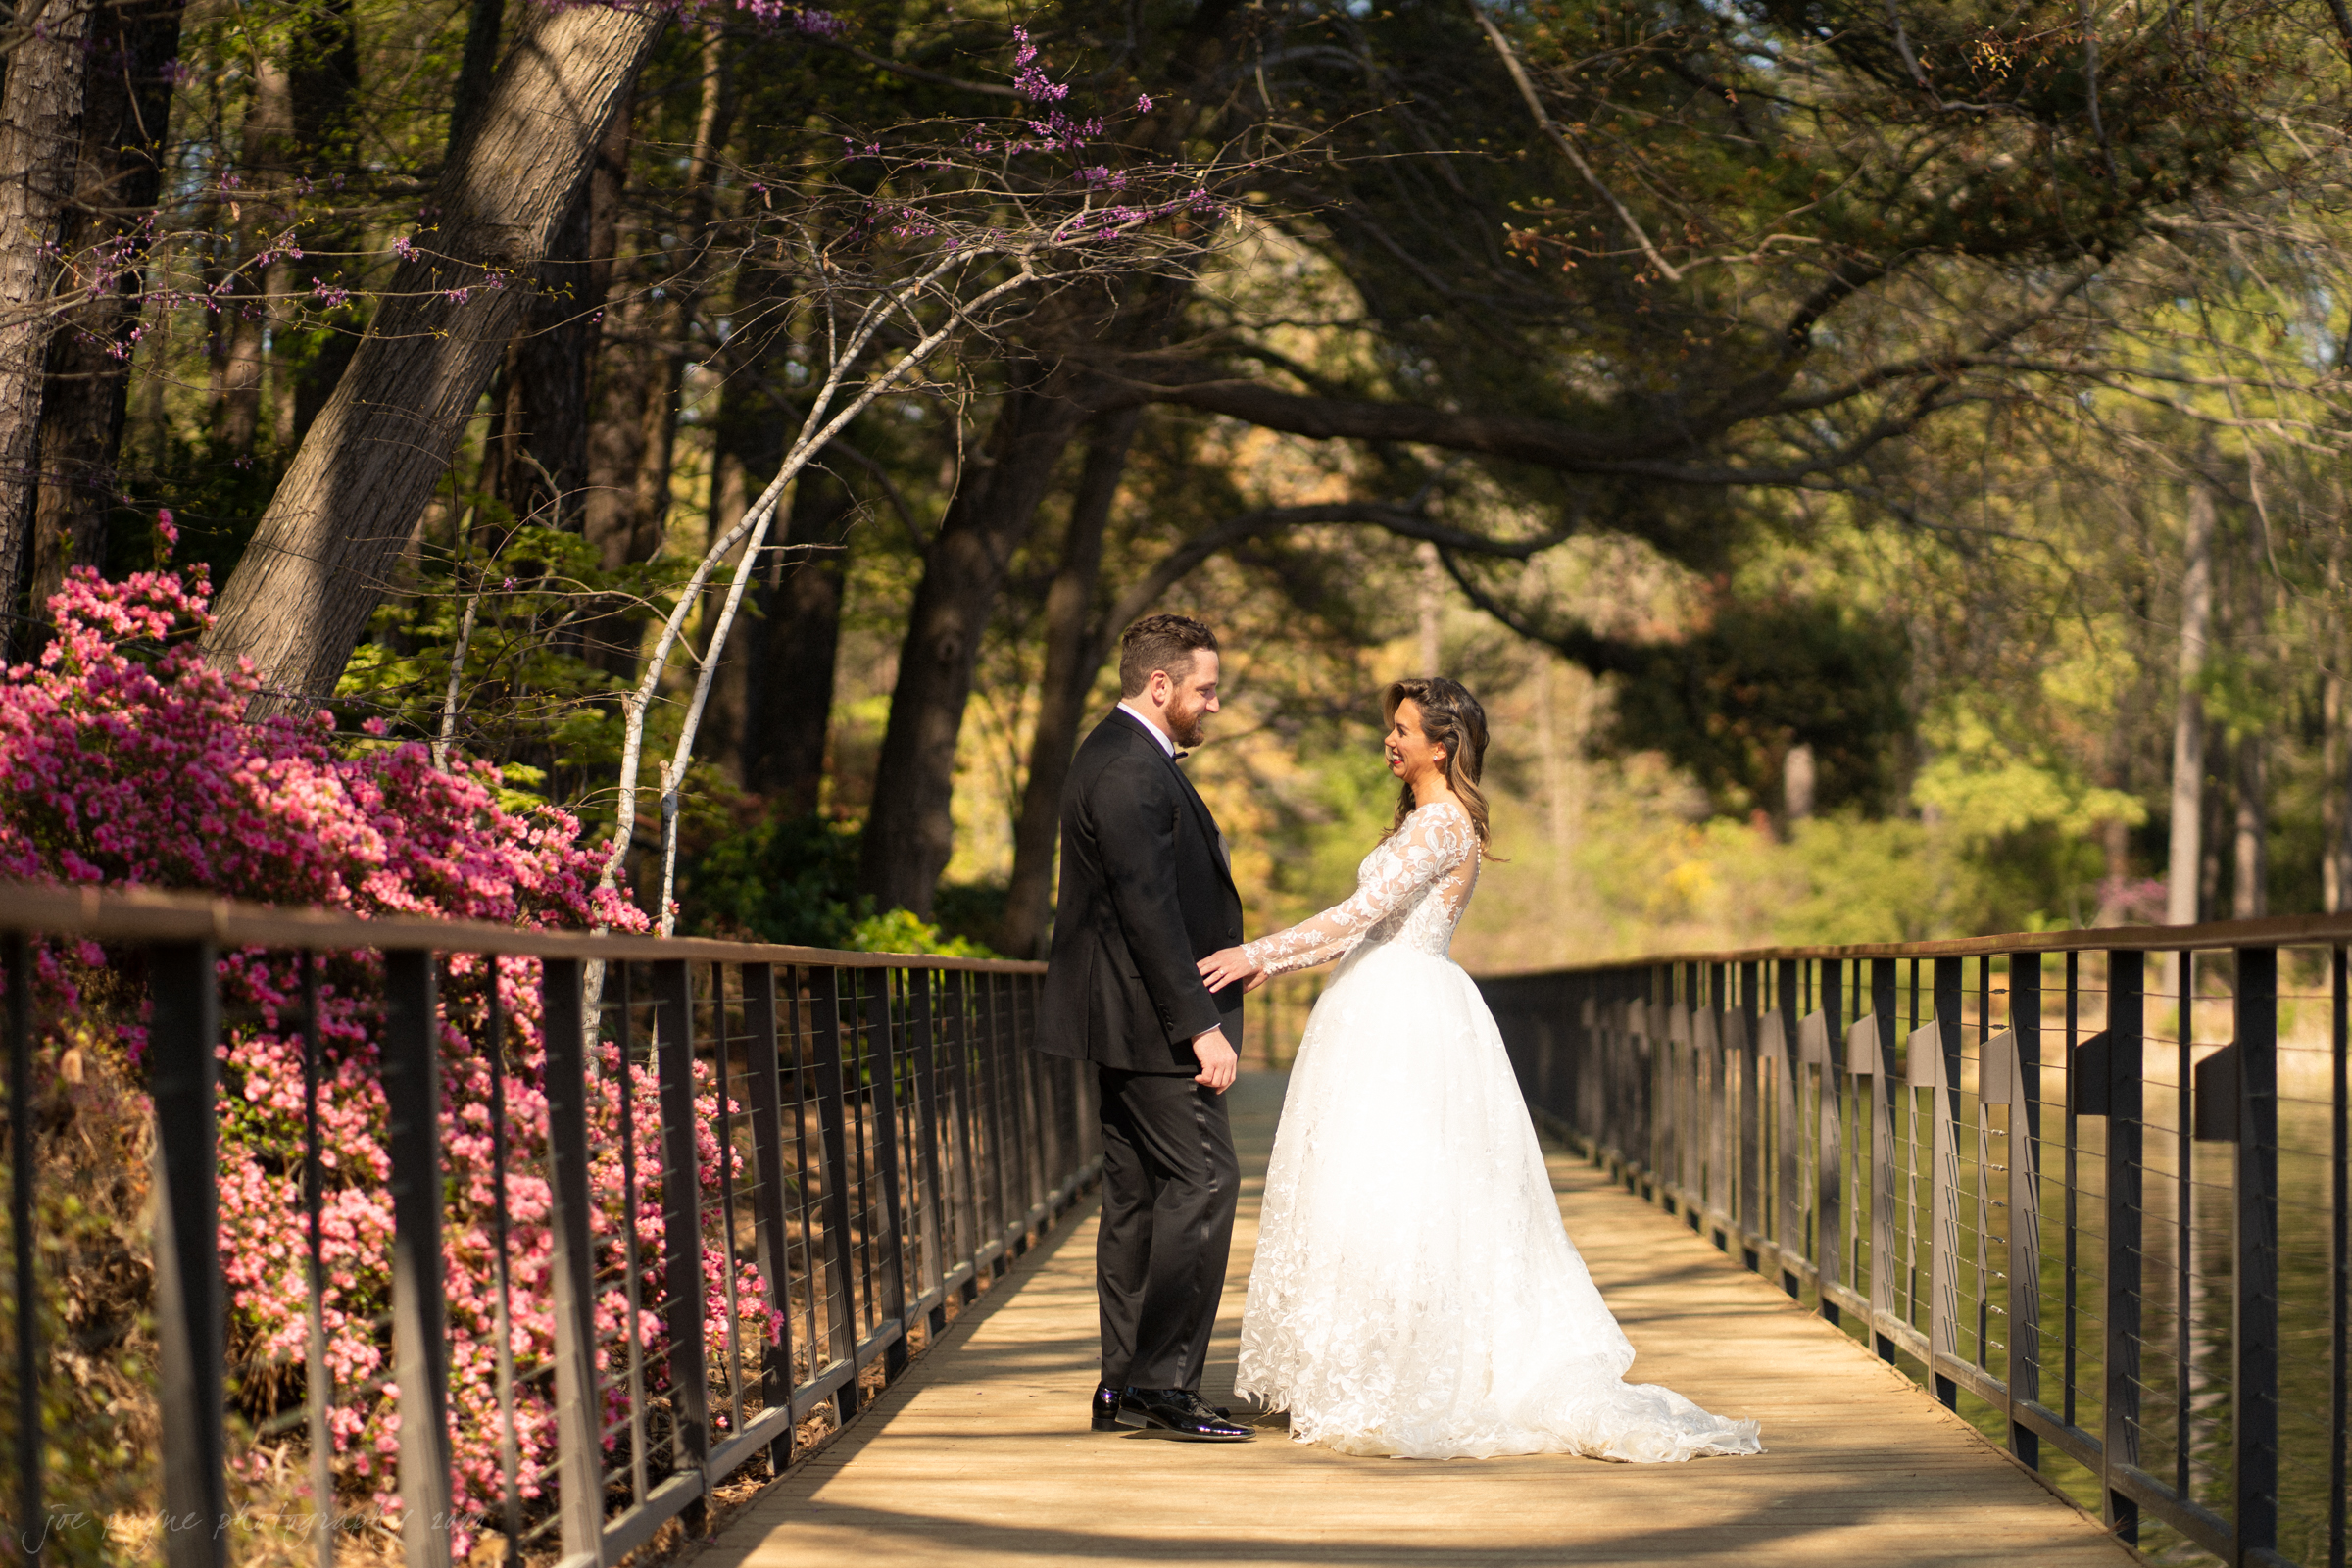 umstead hotel park wedding photography brittany harrison 11